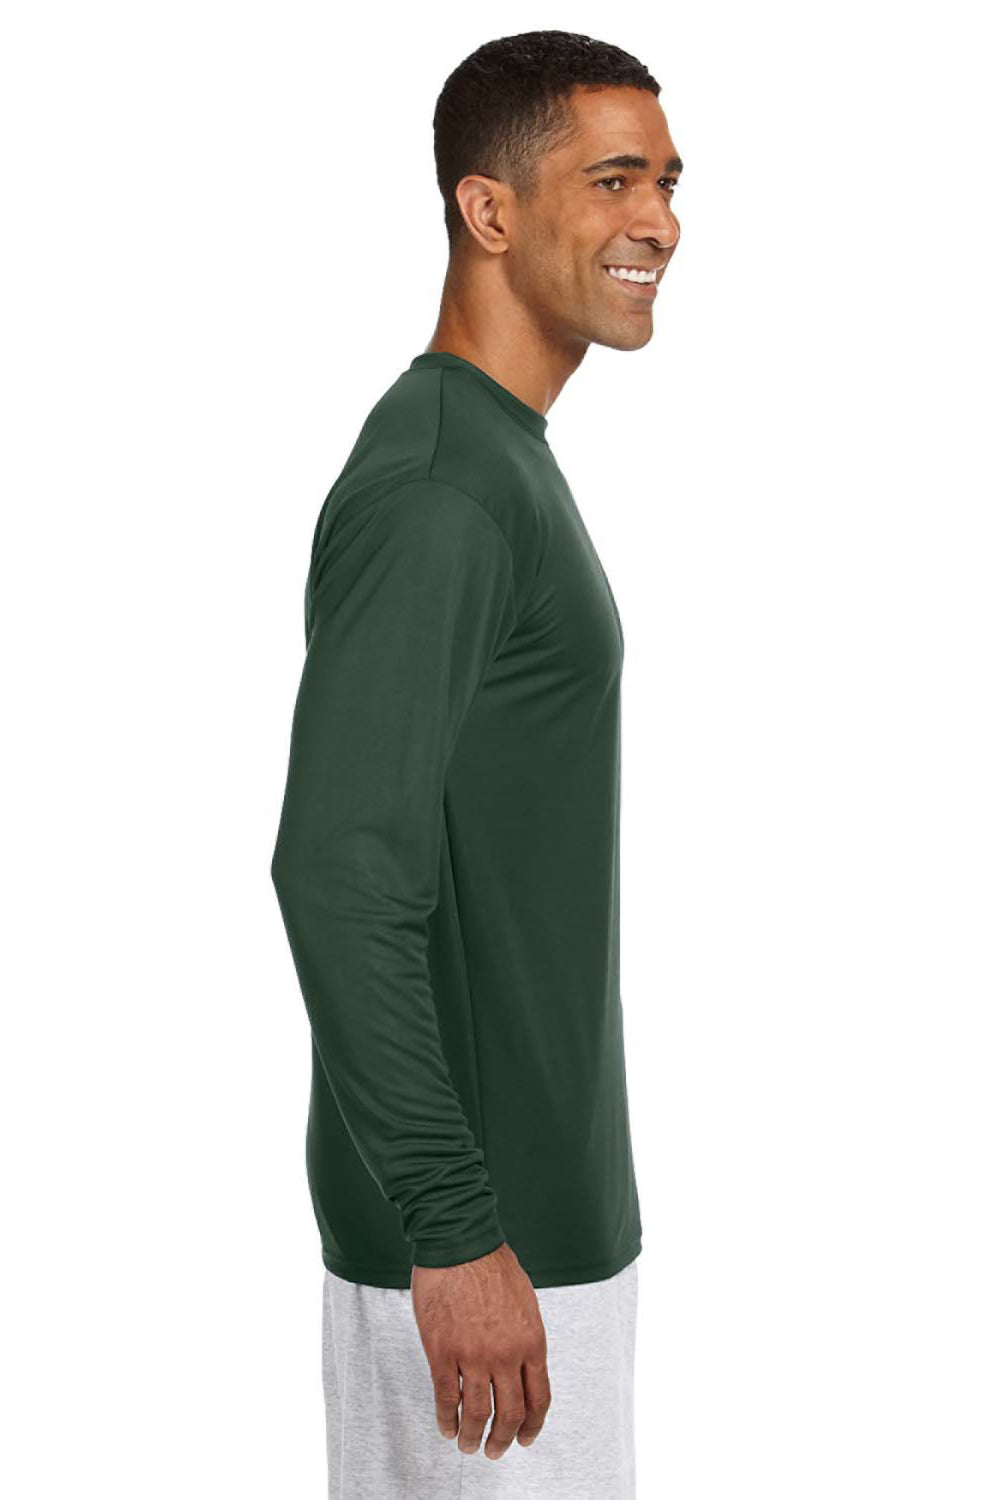 A4 N3165 Mens Cooling Performance Moisture Wicking Long Sleeve Crewneck T-Shirt Forest Green Side